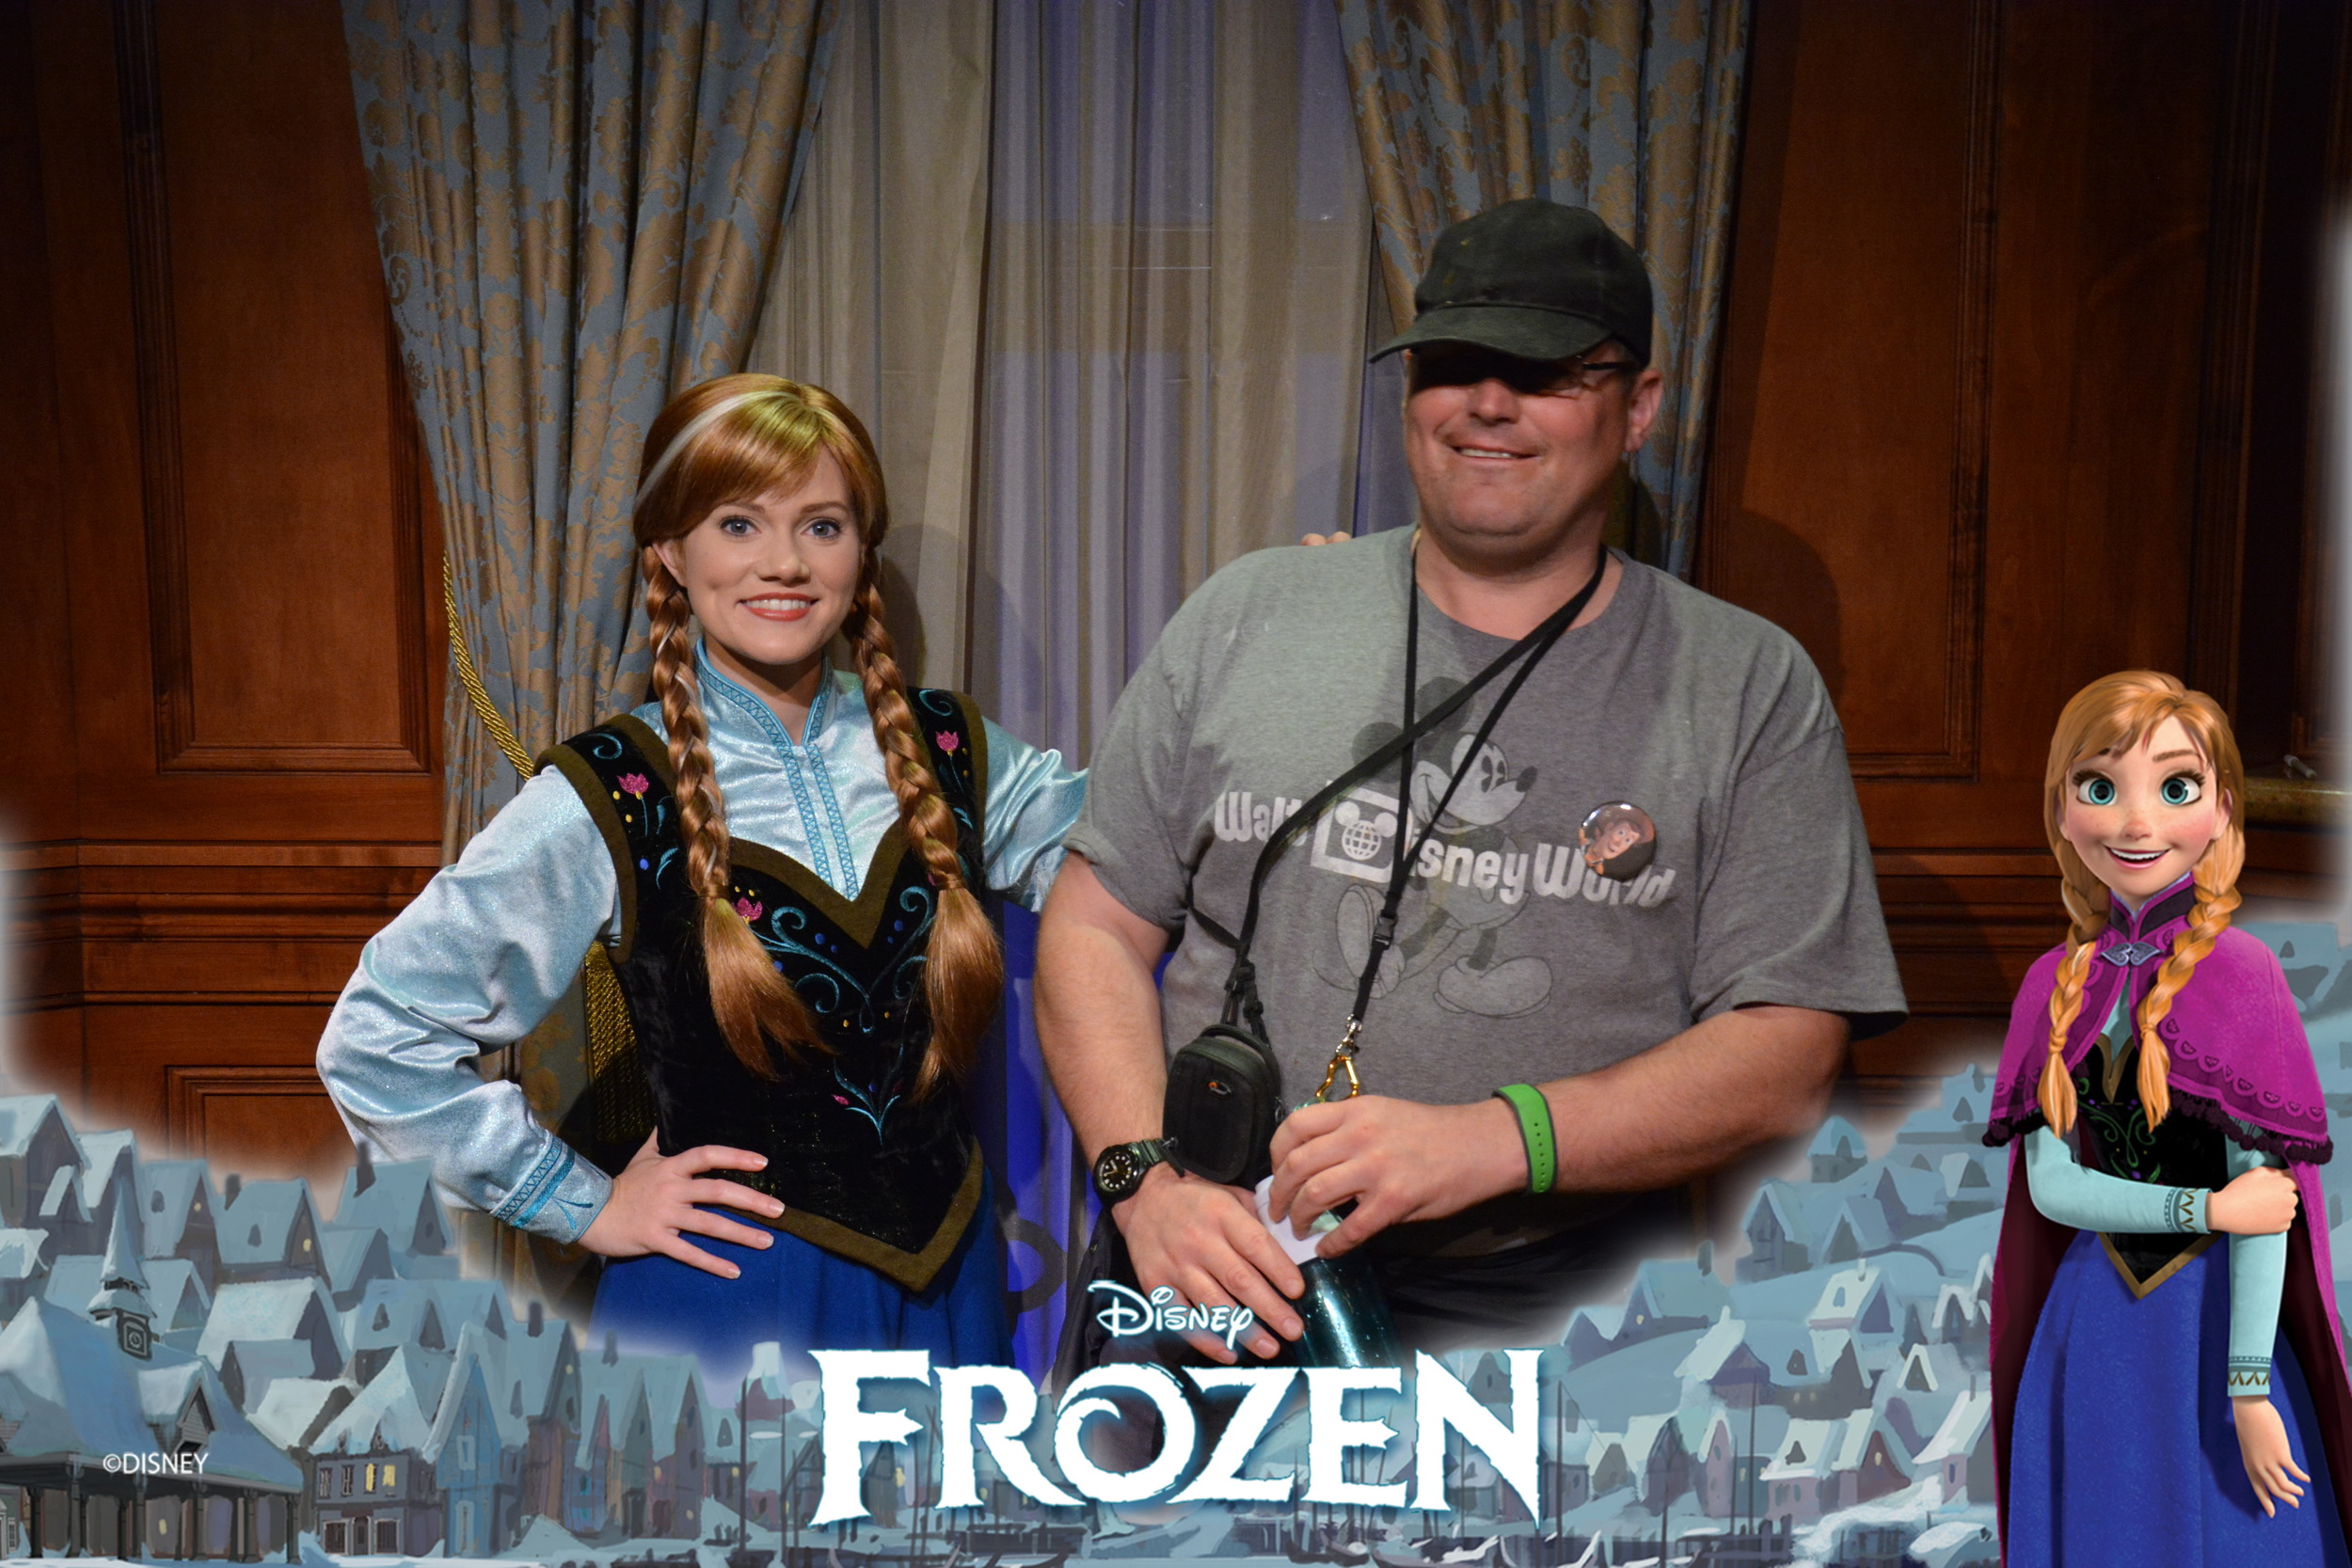 PhotoPass_Visiting_Magic_Kingdom_Park_7091571090.jpg